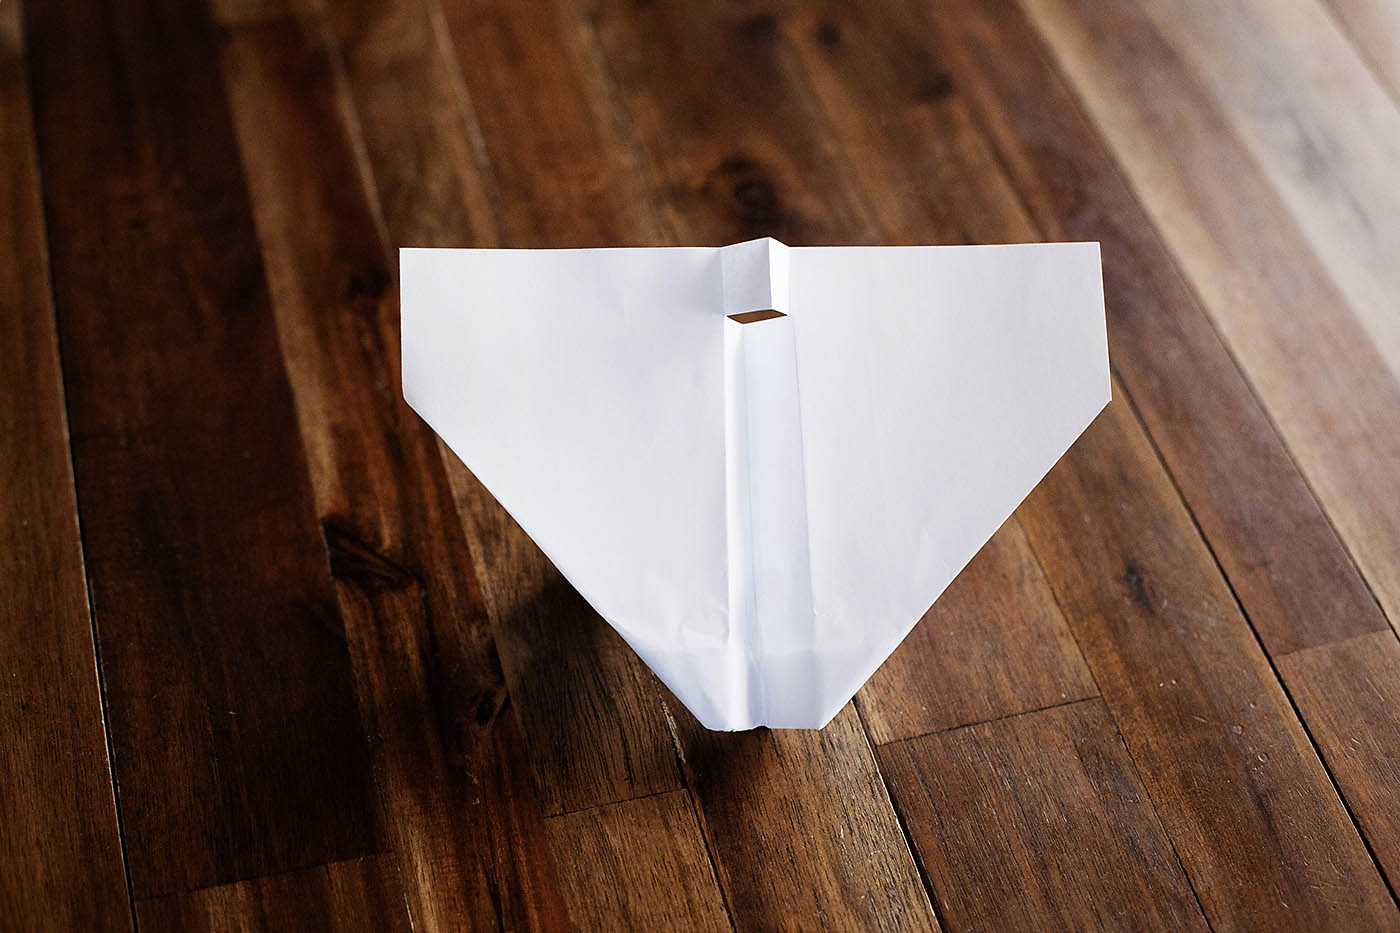 Square plane - great first plane and for learning to make modifications.